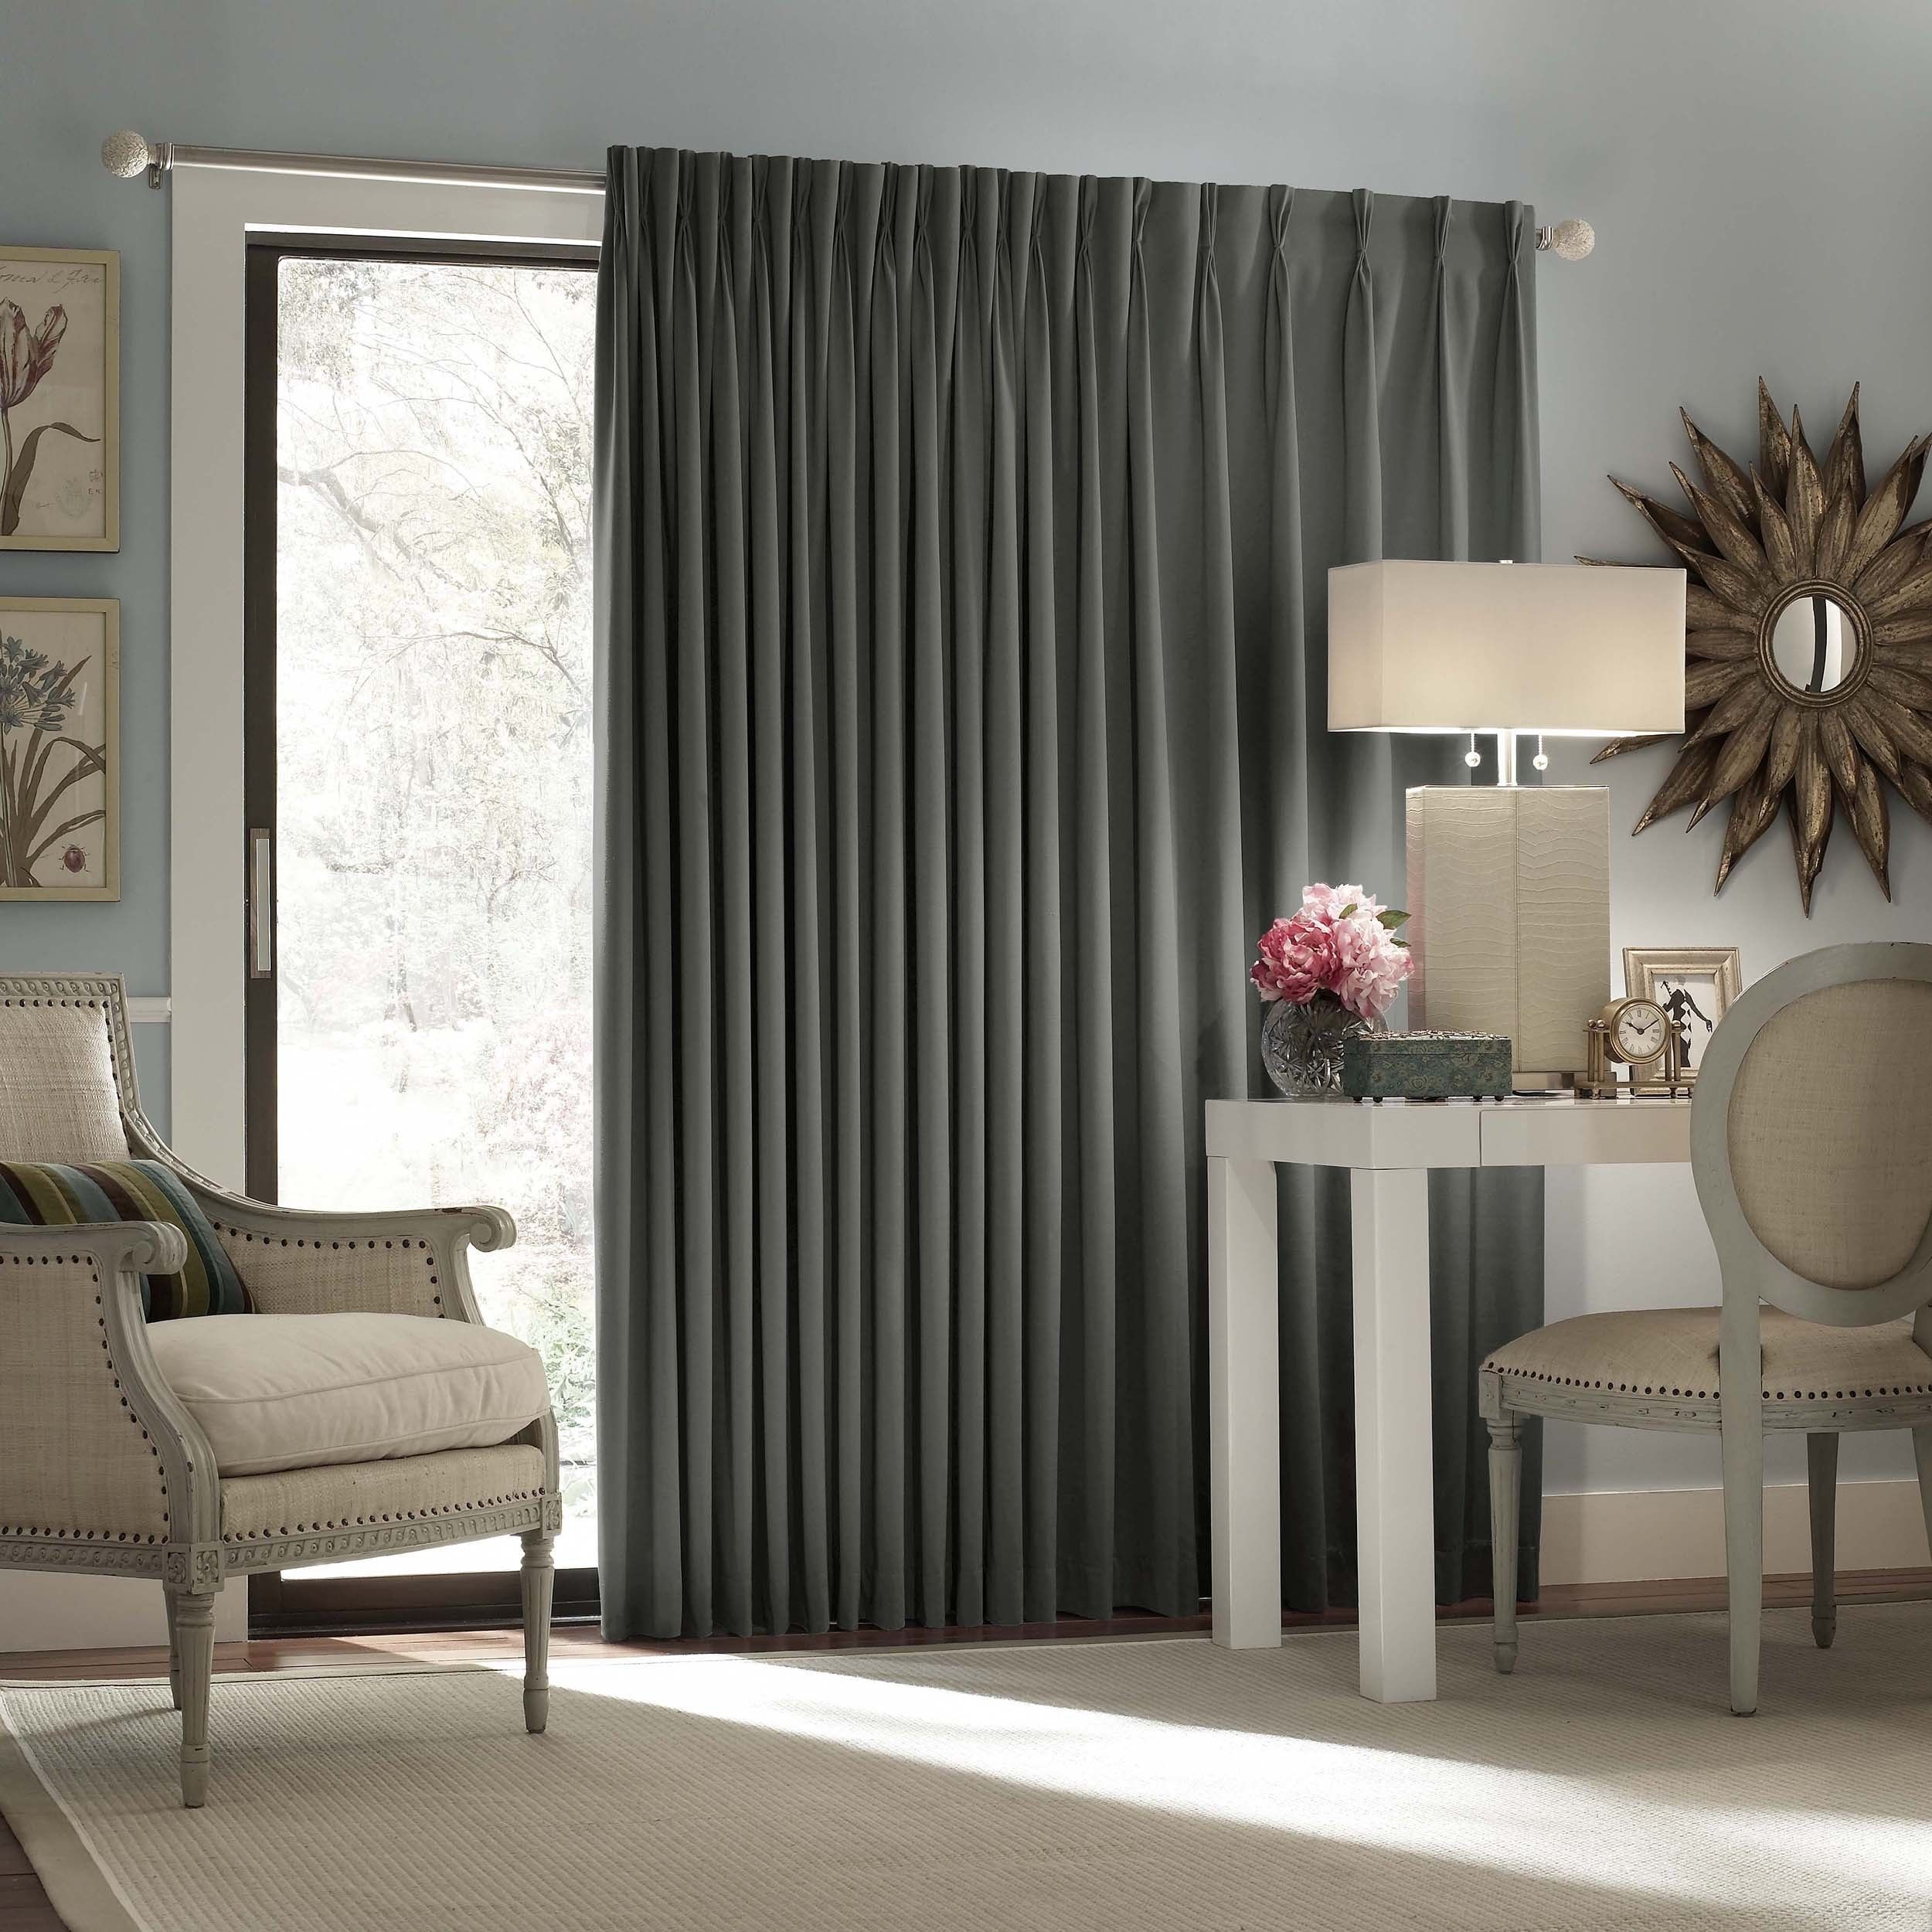 Eclipse Thermal Blackout Patio Door Curtain Panel x Charcoal